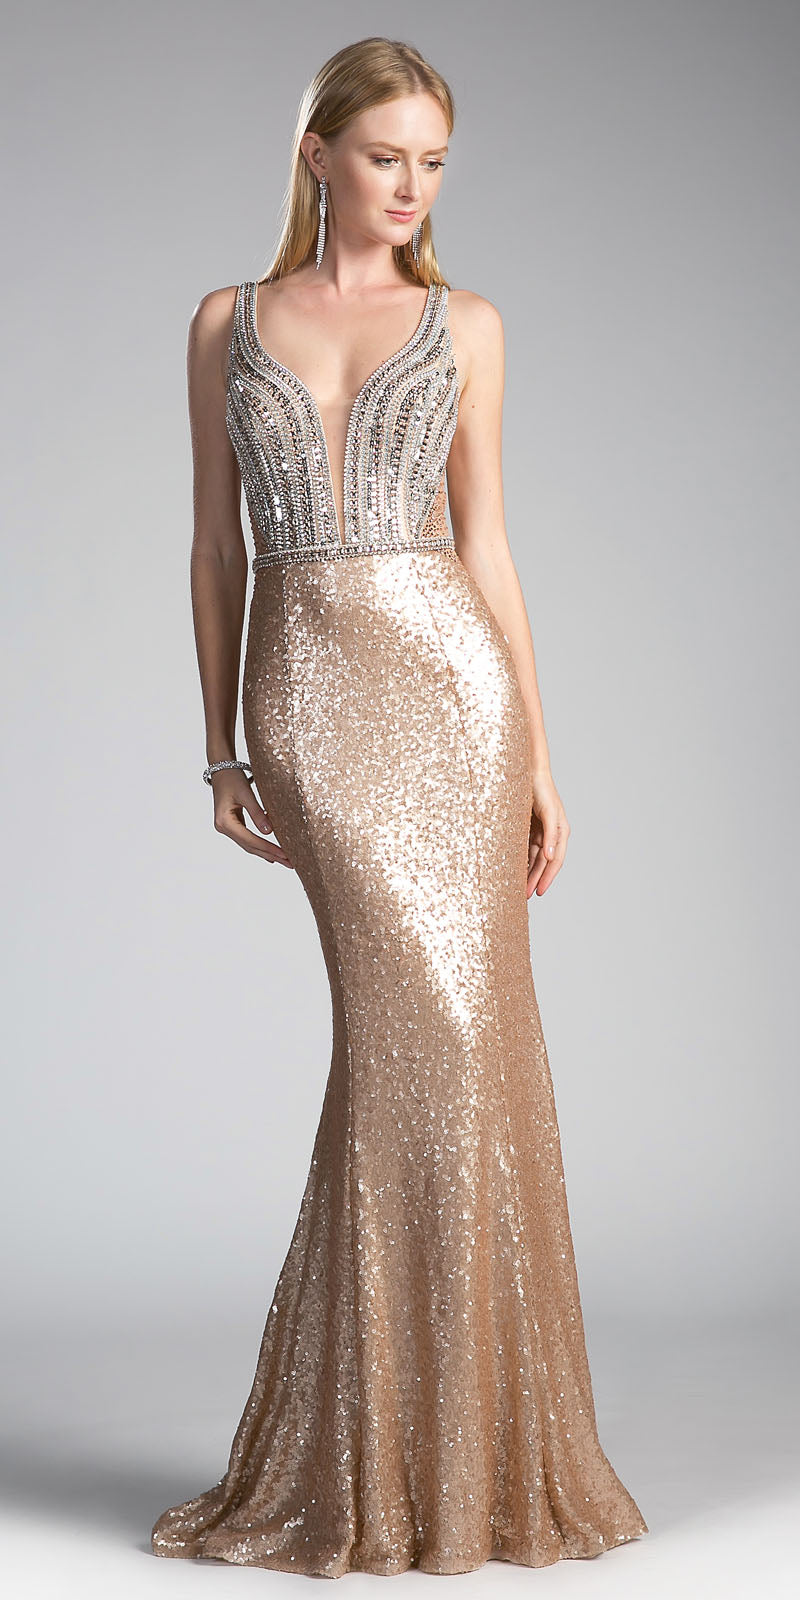 Gold Cut Out Prom Dresses